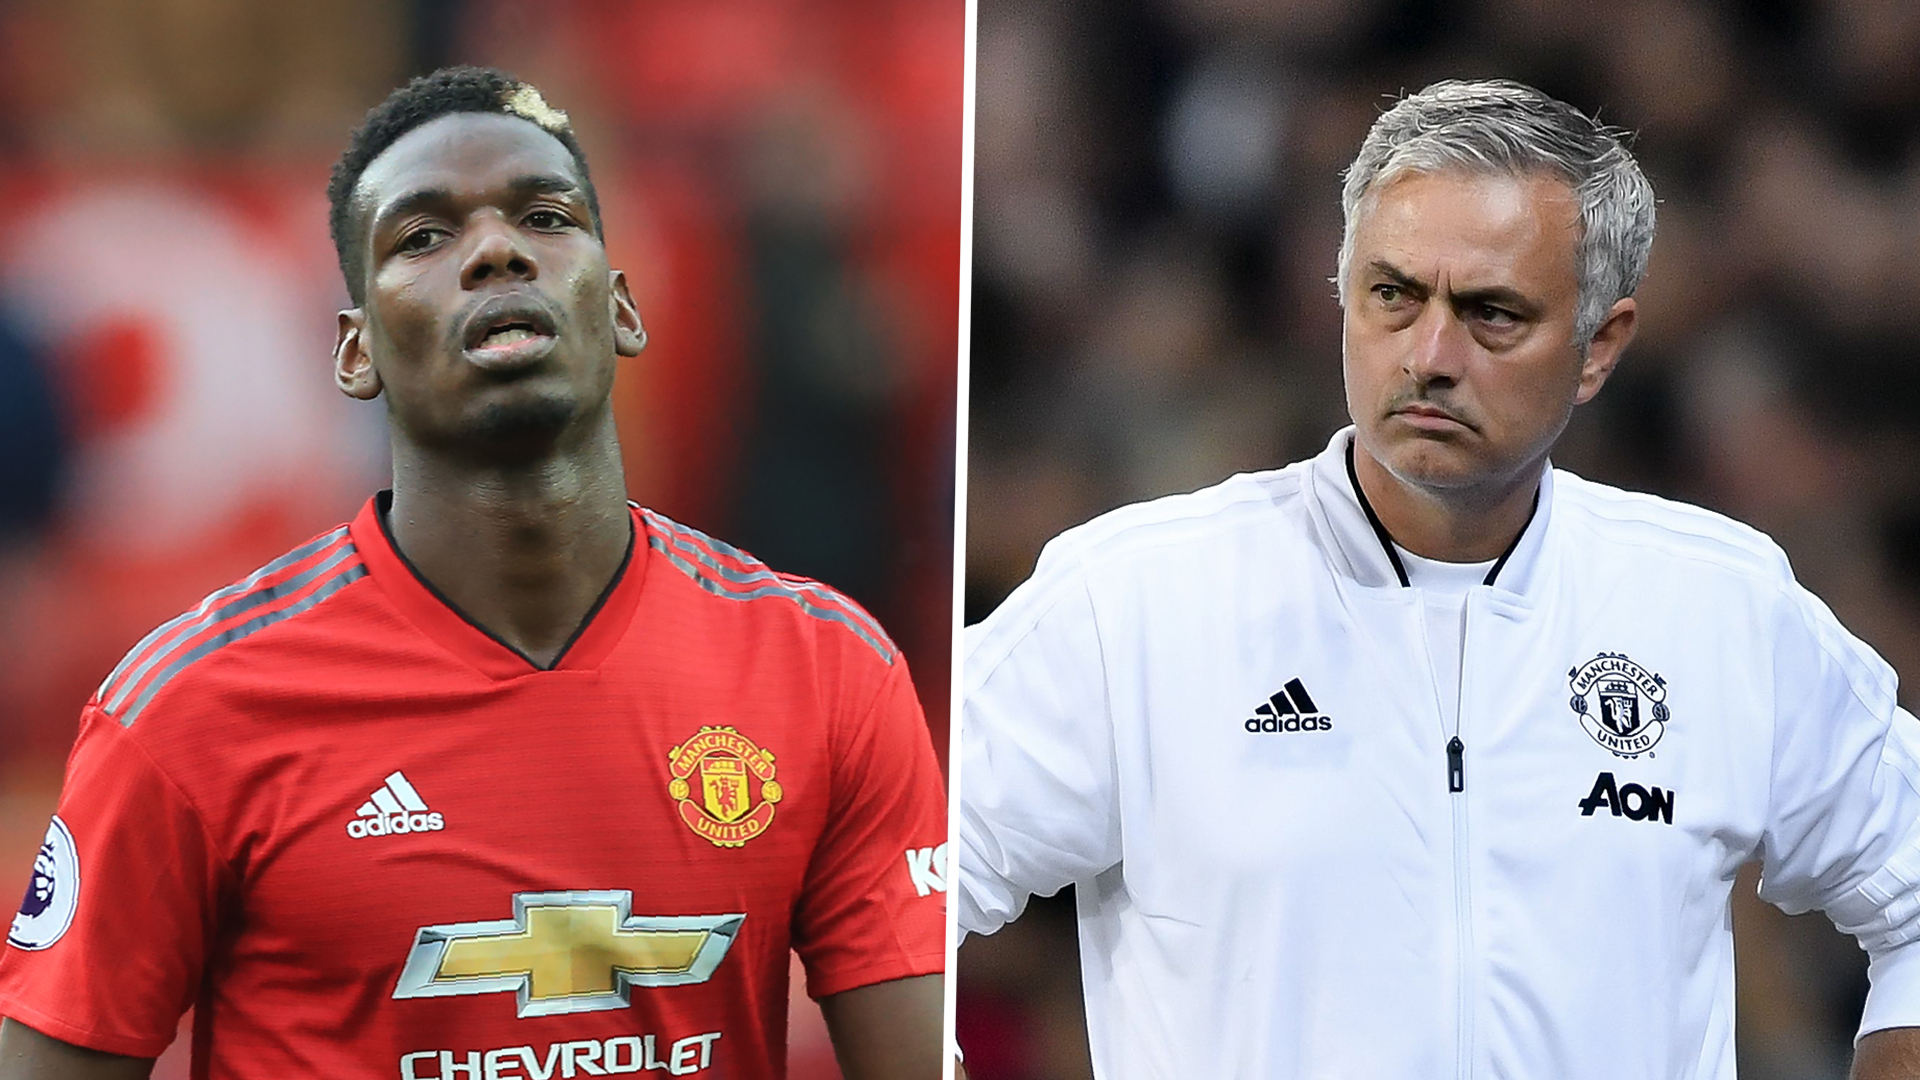 José Mourinho backed by Old Trafford hierarchy in Paul Pogba power struggle